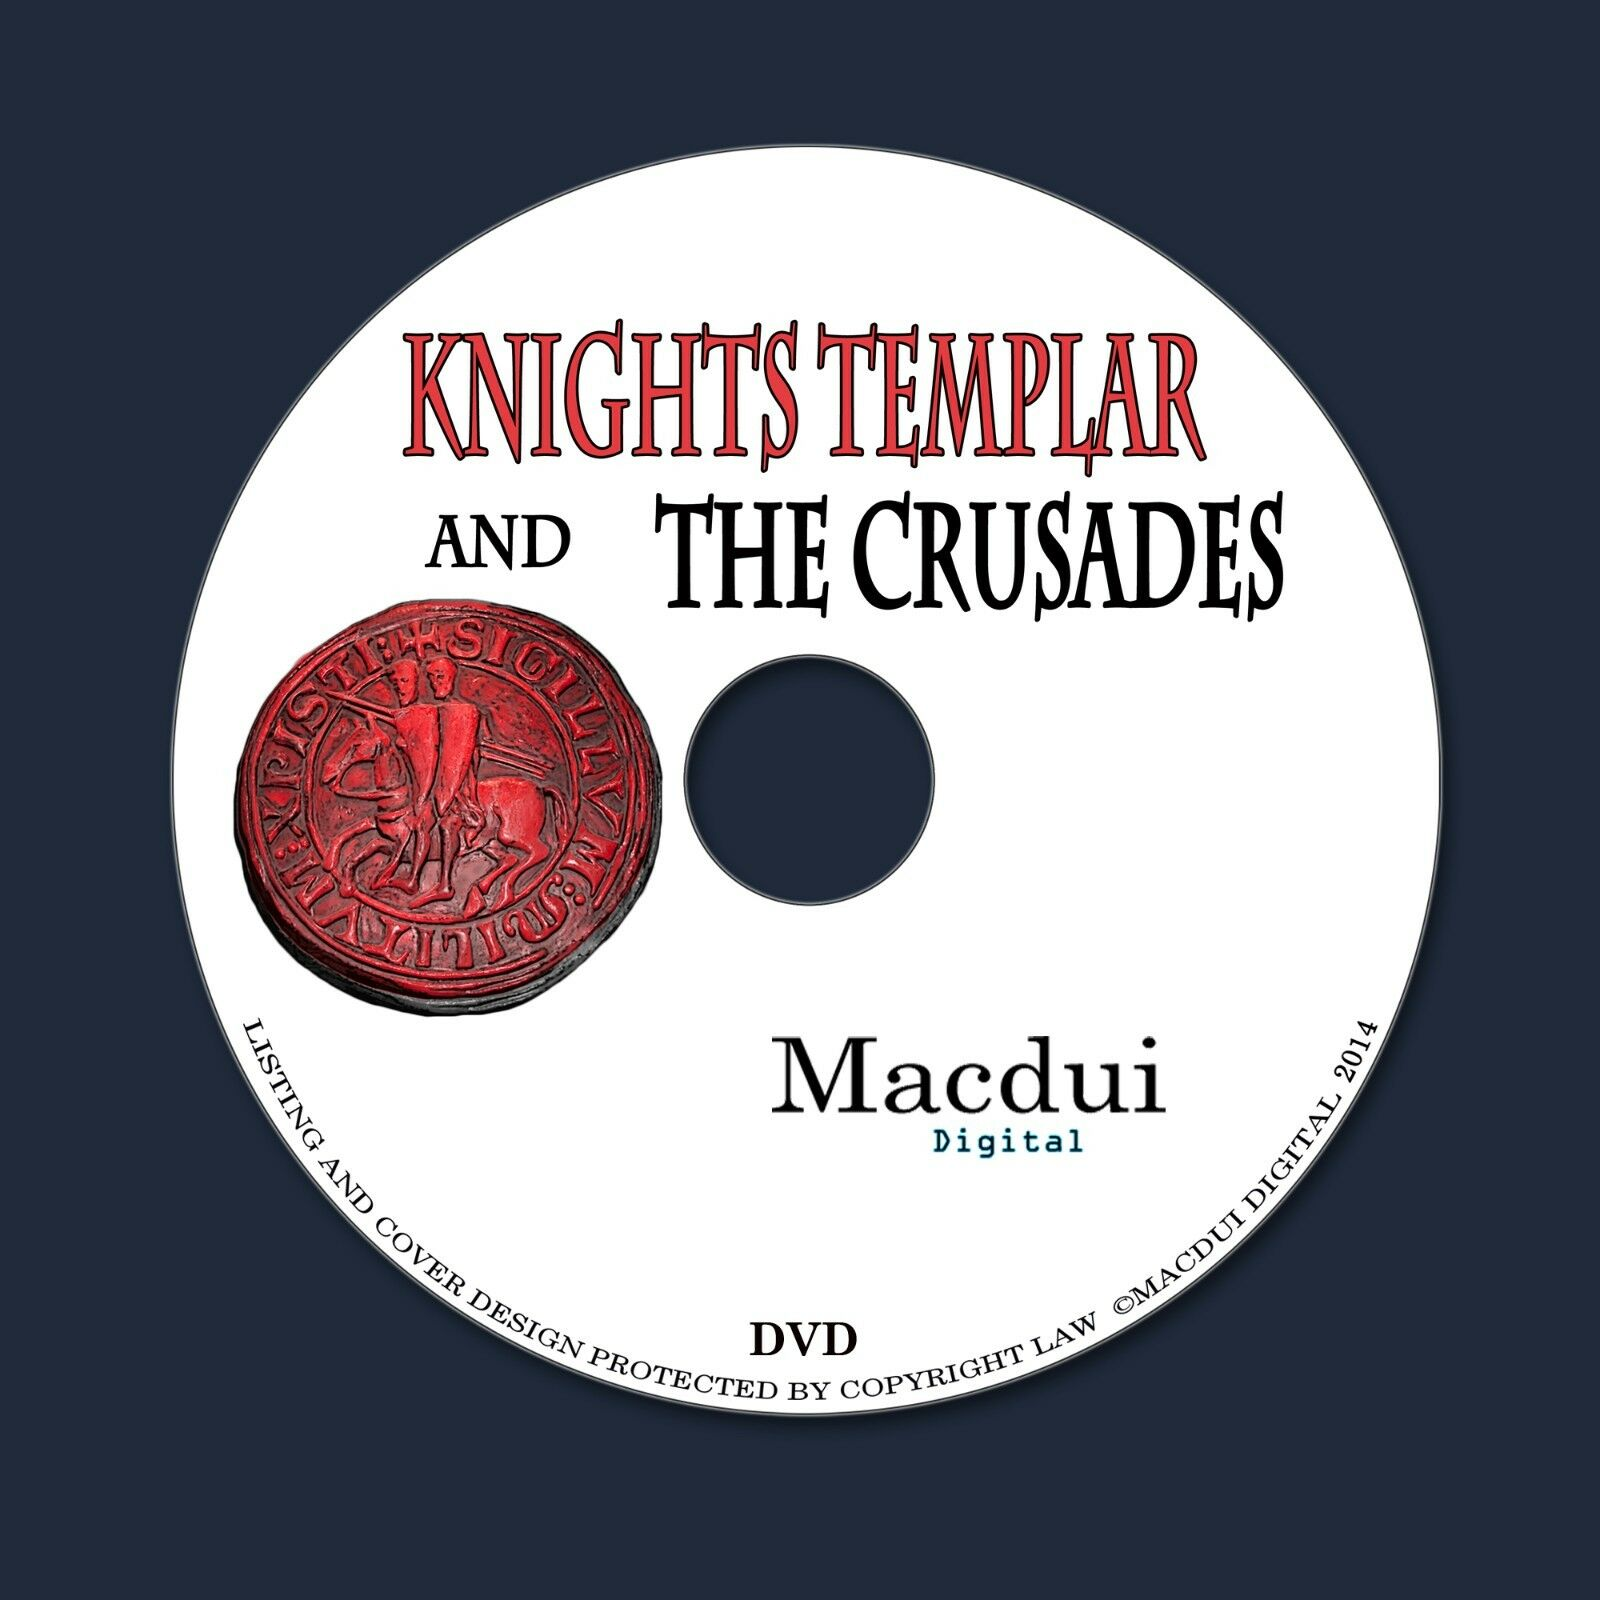 Knights templar crusades vintage e books collection 96 pdf on 1 1 of 11only 1 available fandeluxe Gallery